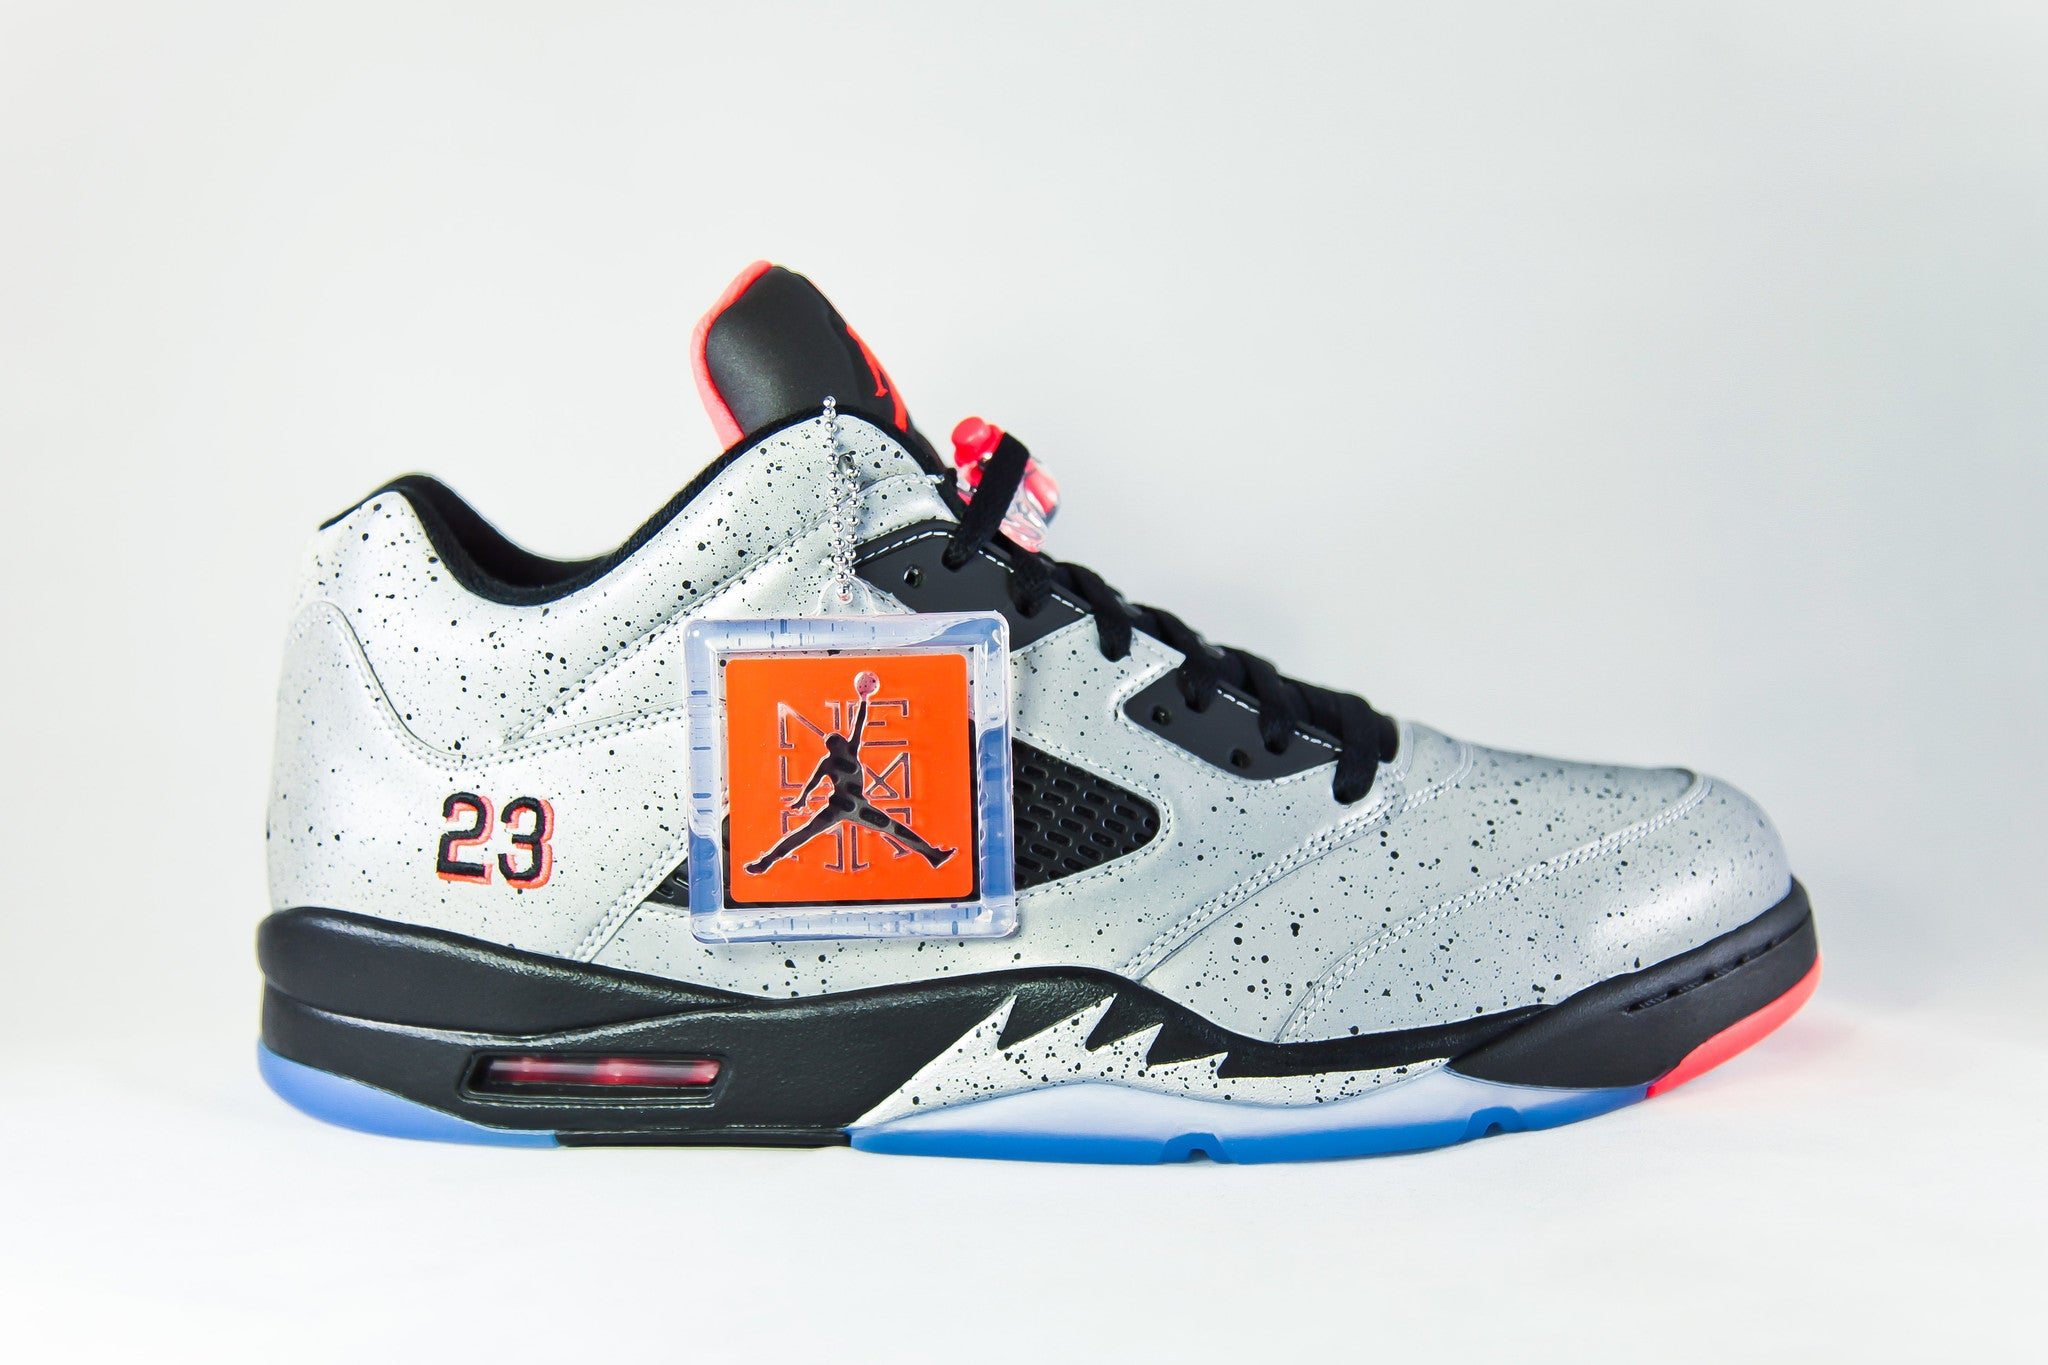 finest selection bd6bf f802f New Air Jordan 5 Low